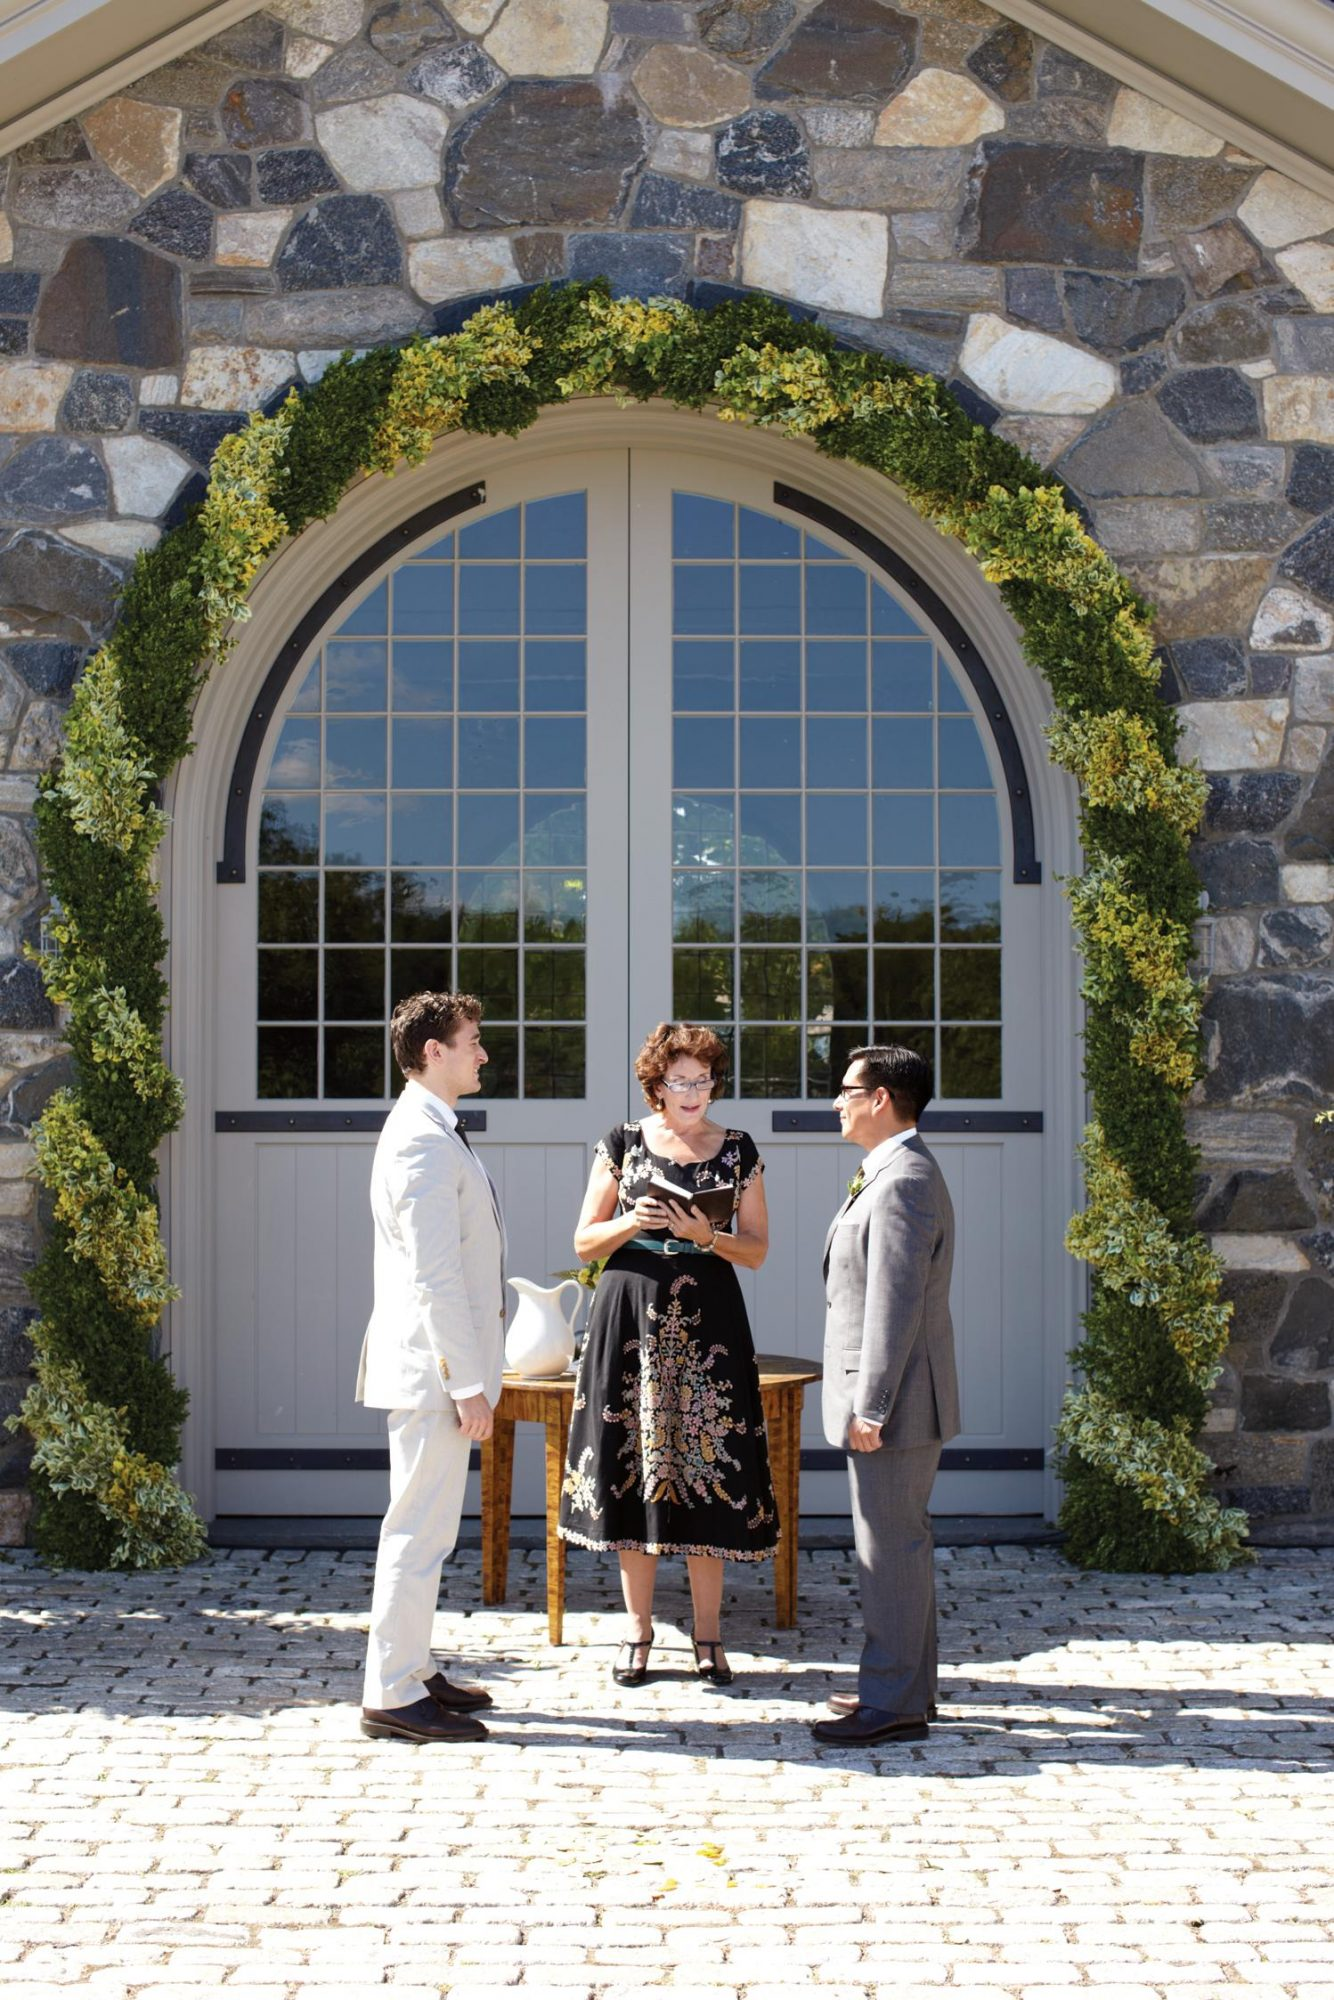 Couple getting married under arched backdrop